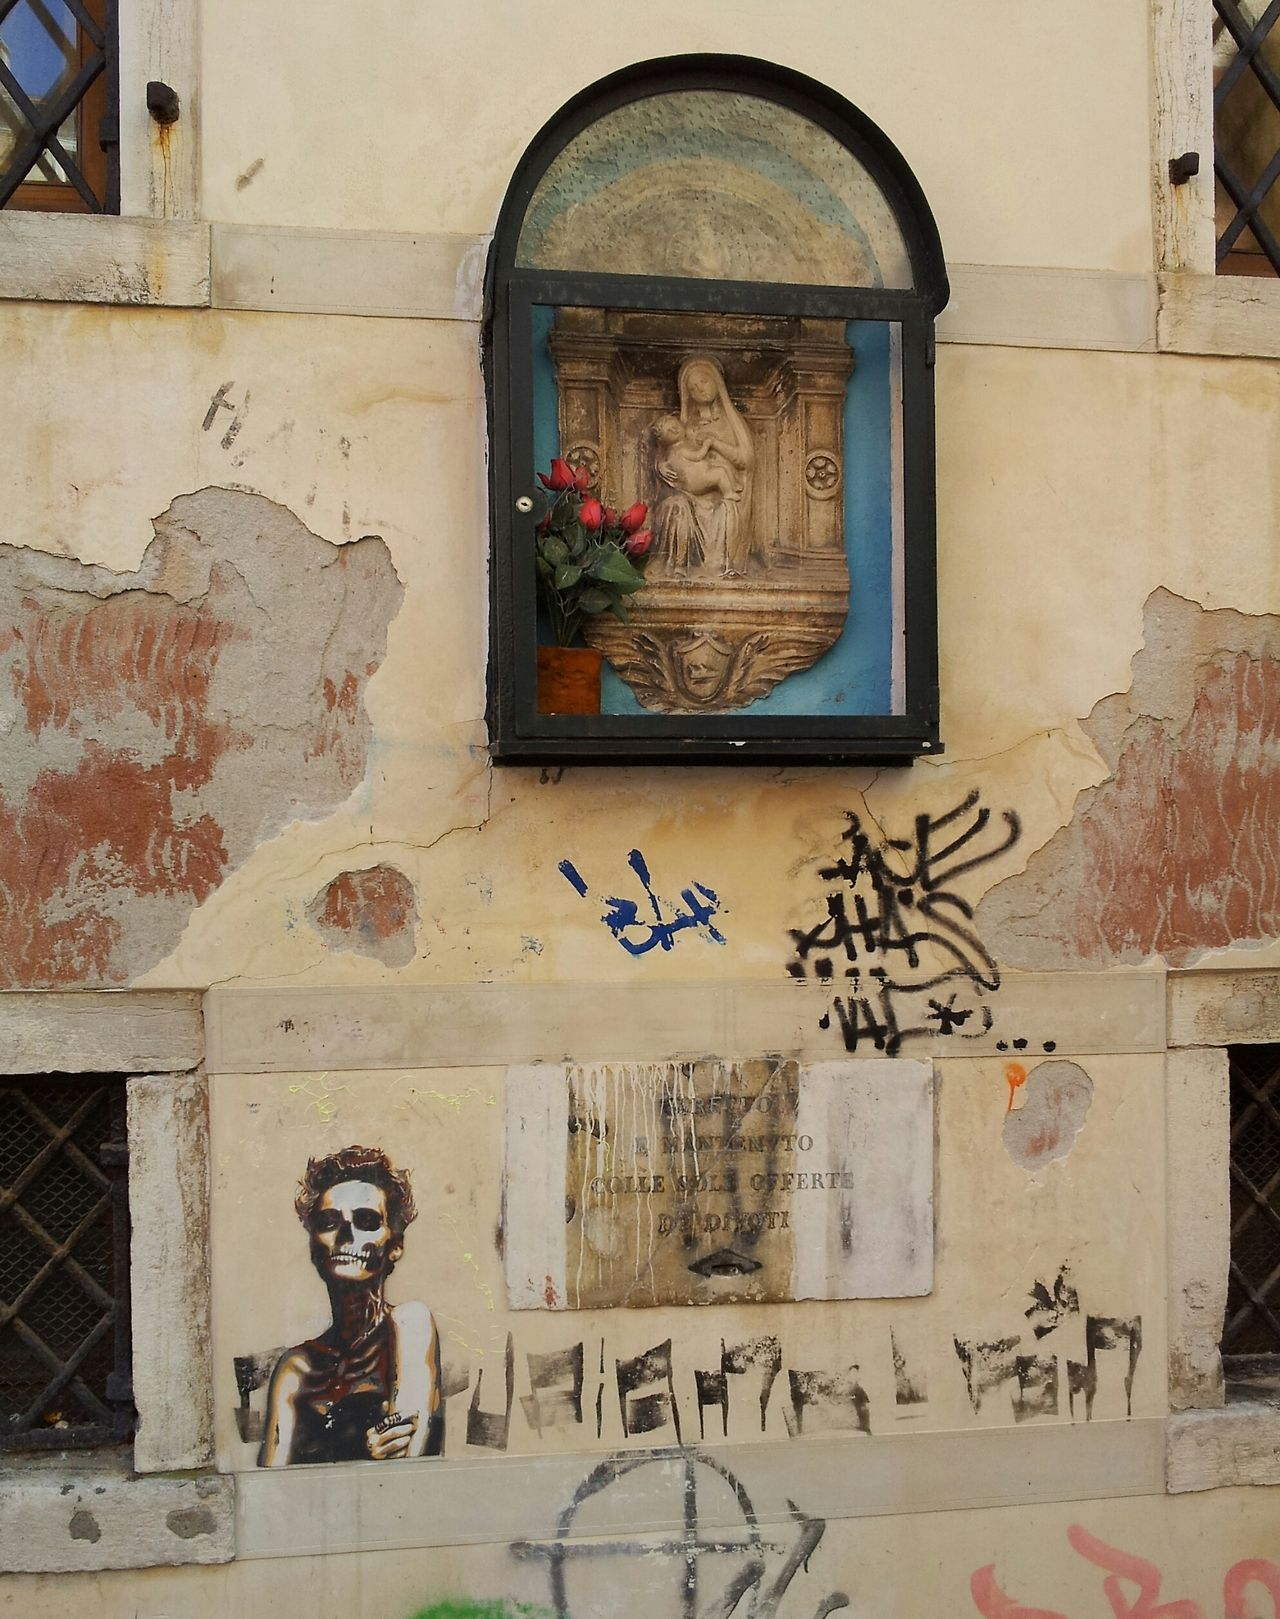 In Venice this graffiti of a skeletal junkie model is artfully posed beneath a madonna. From www.atthepinkhouse.tumblr.com